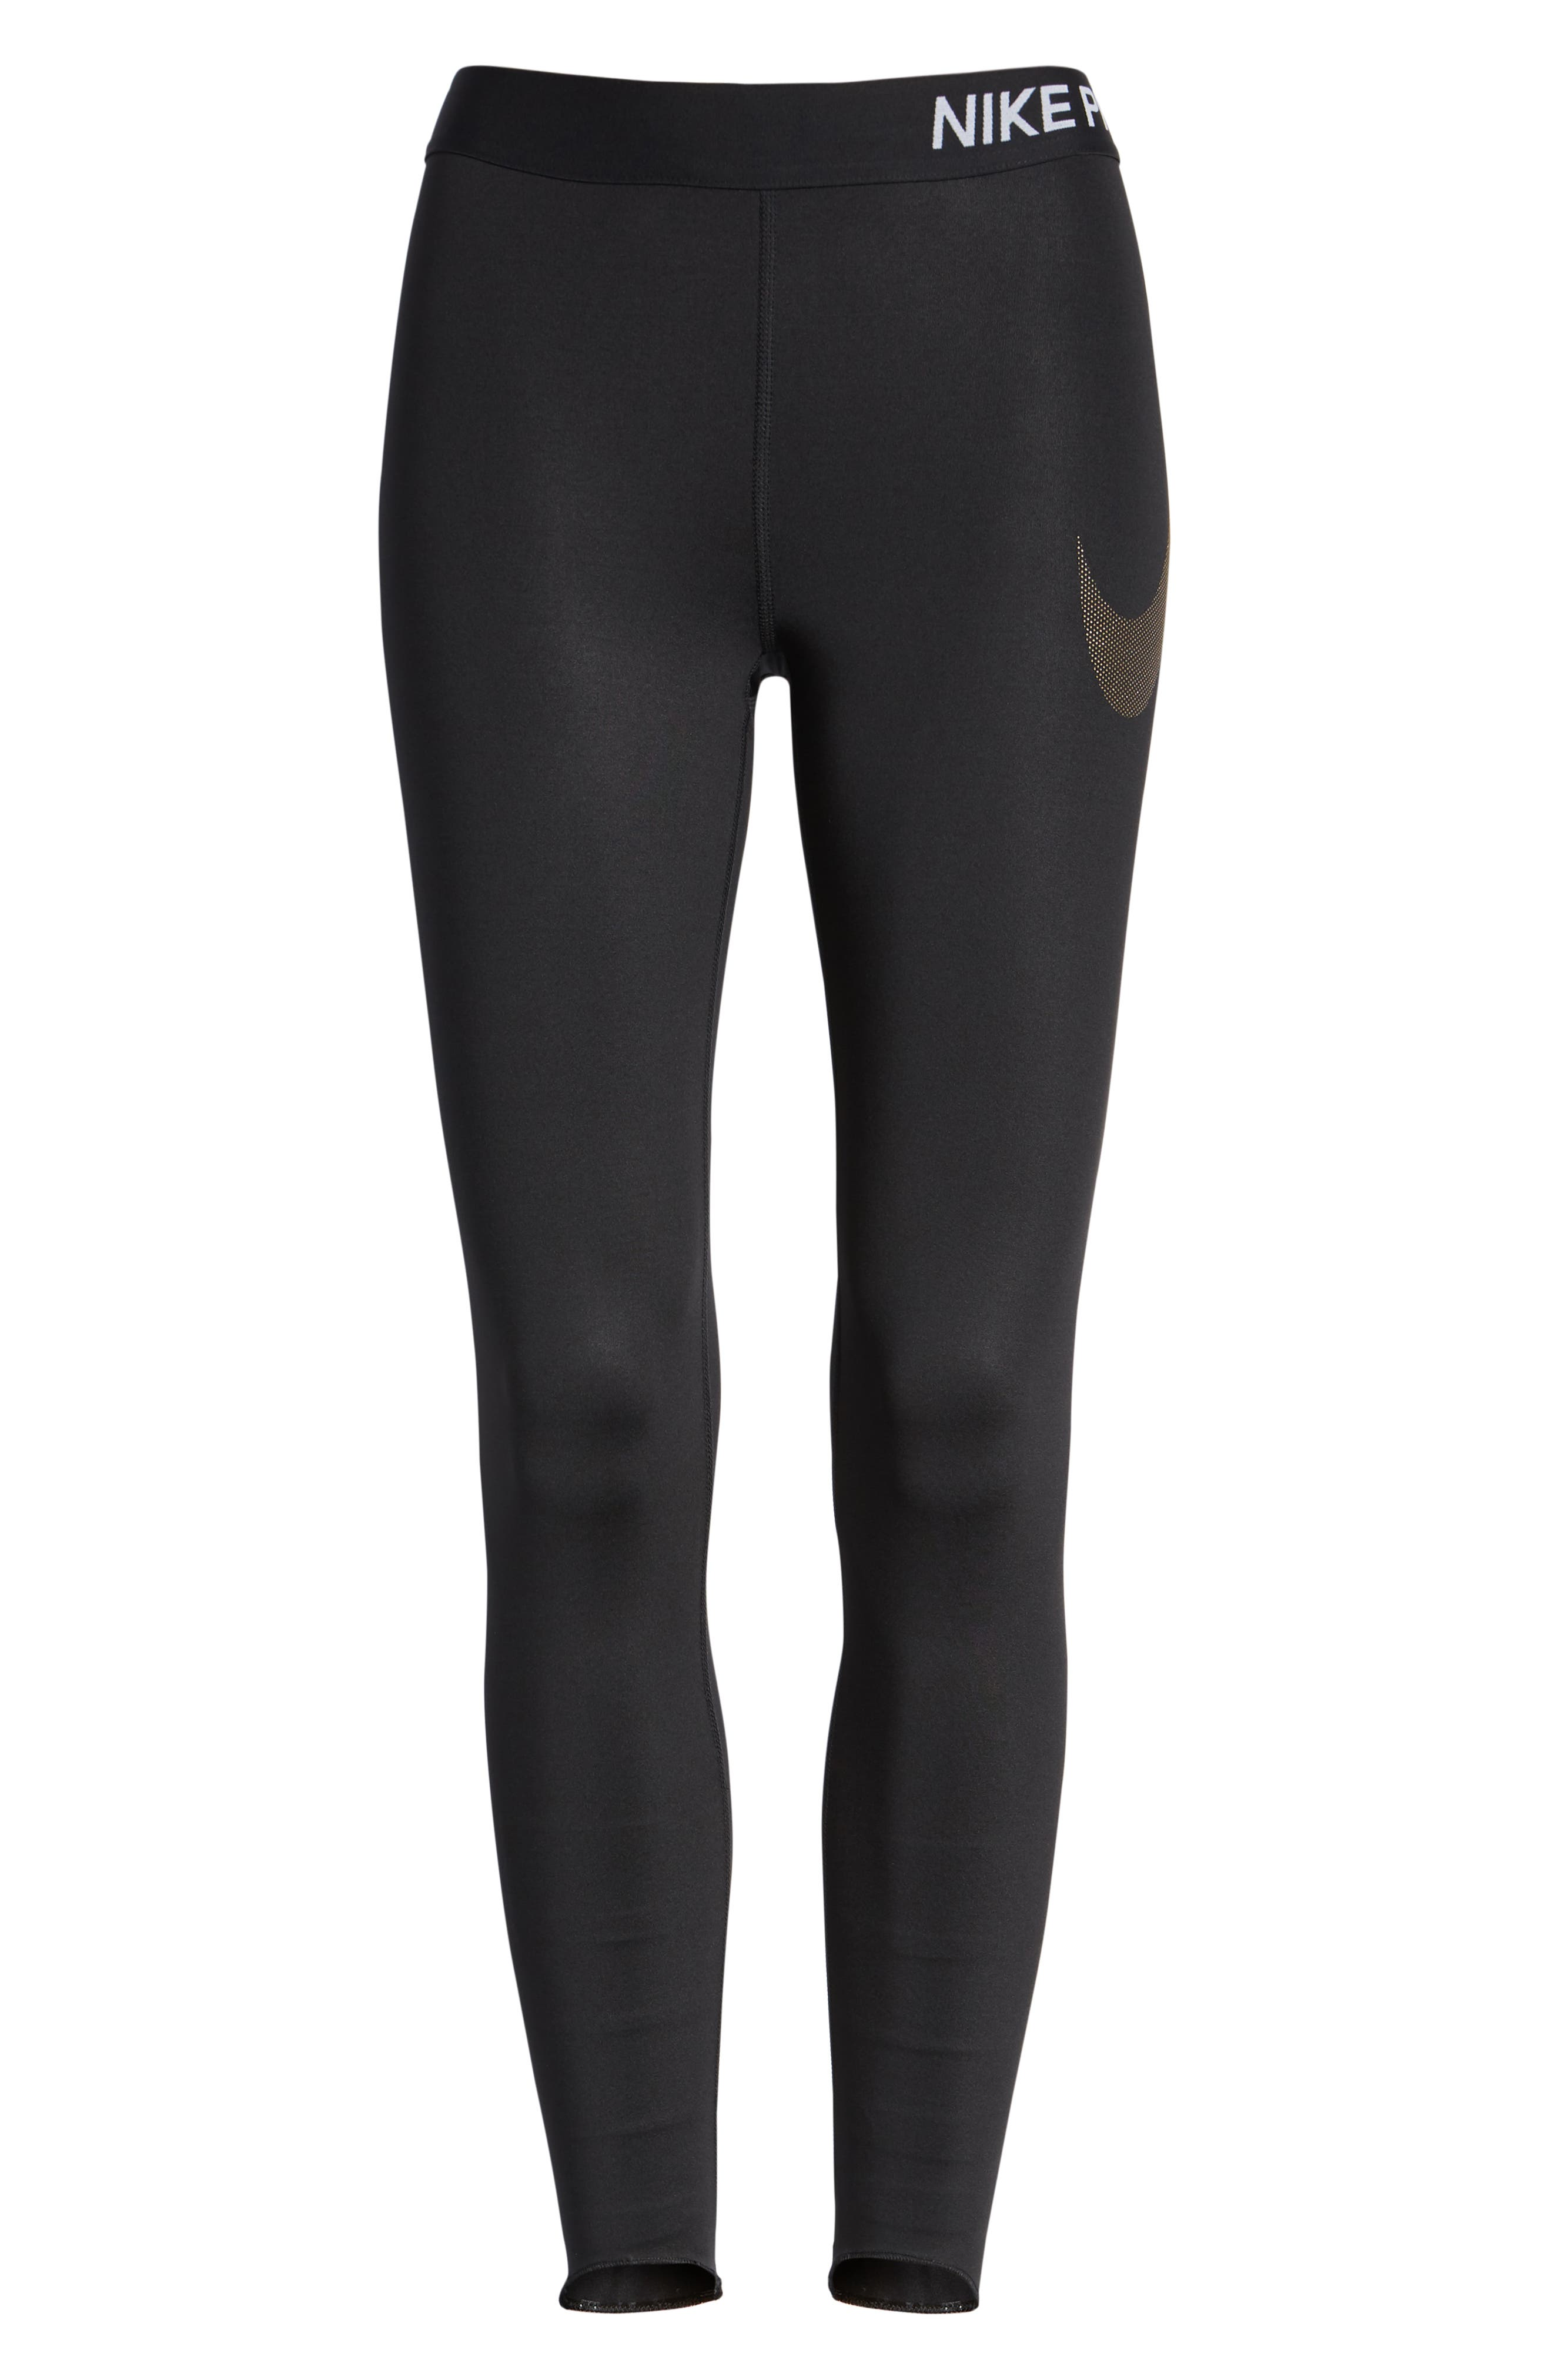 Pro Embossed Logo 7/8 Tights,                         Main,                         color, 010